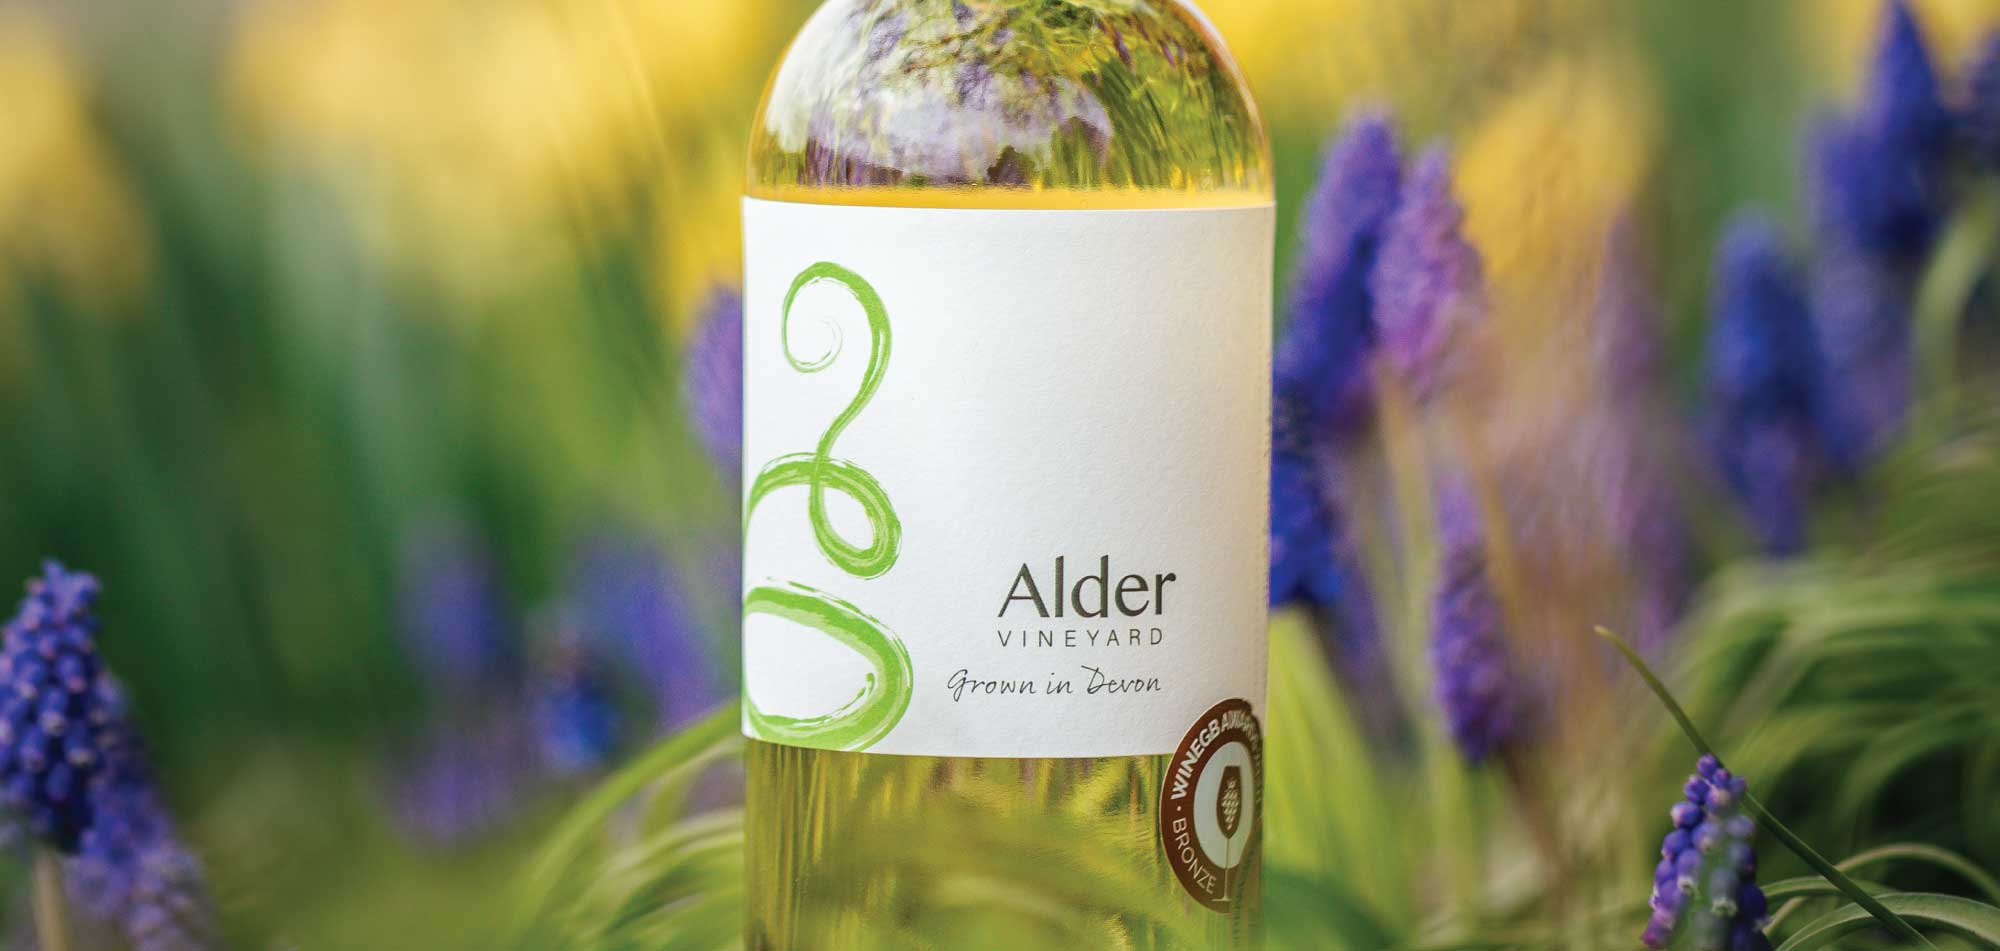 Spring is here - white wine